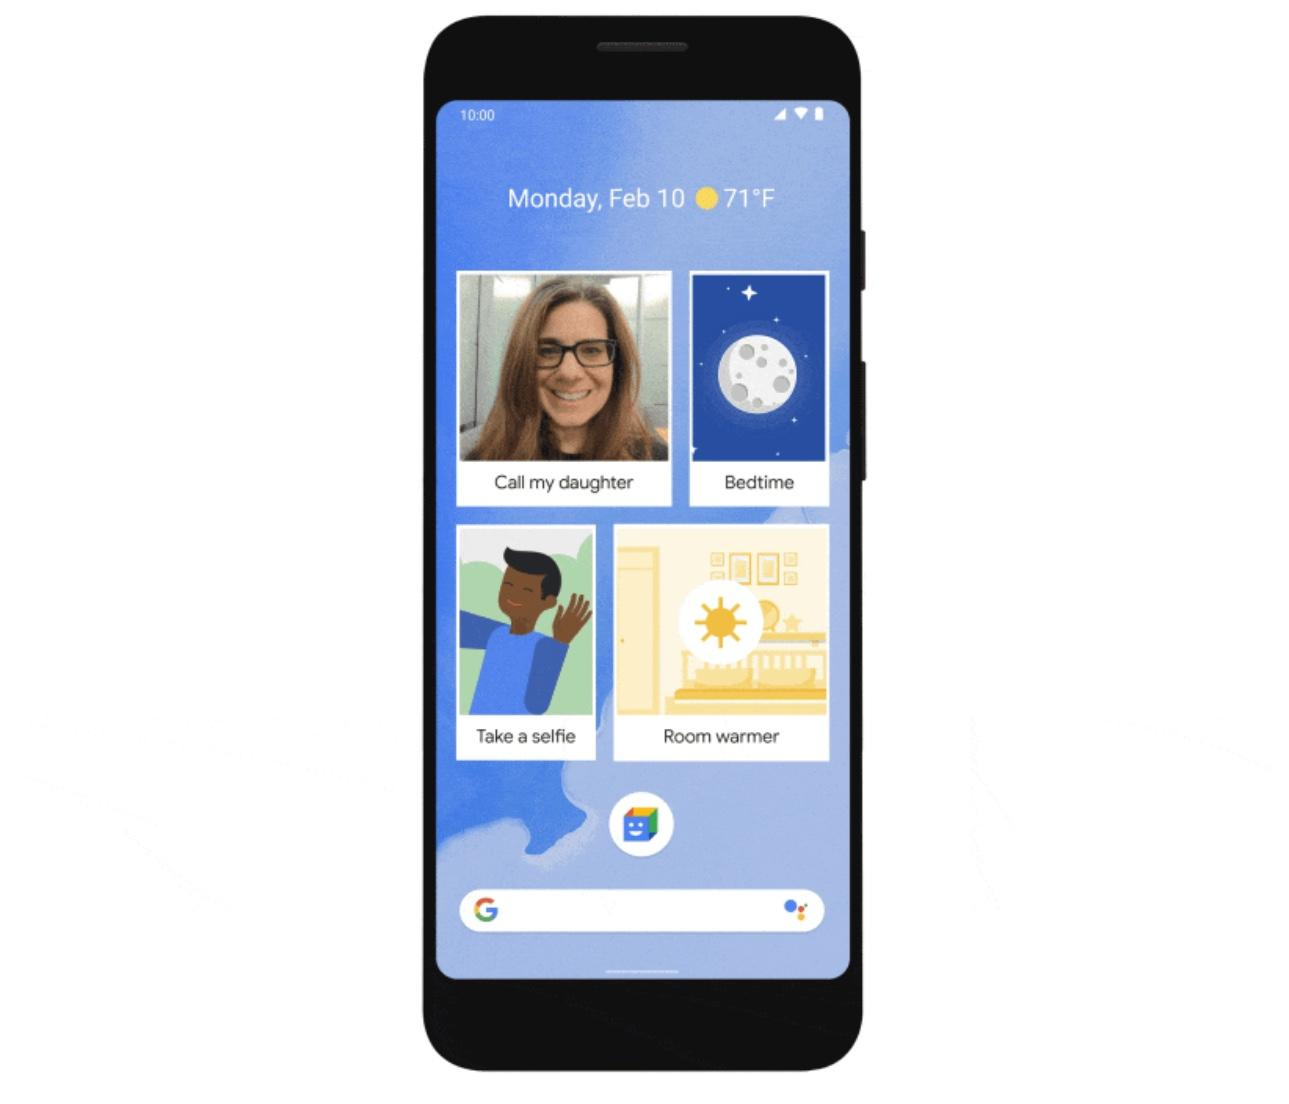 Google rolls out new Android and Maps features to assist users with cognitive and physical disabilities